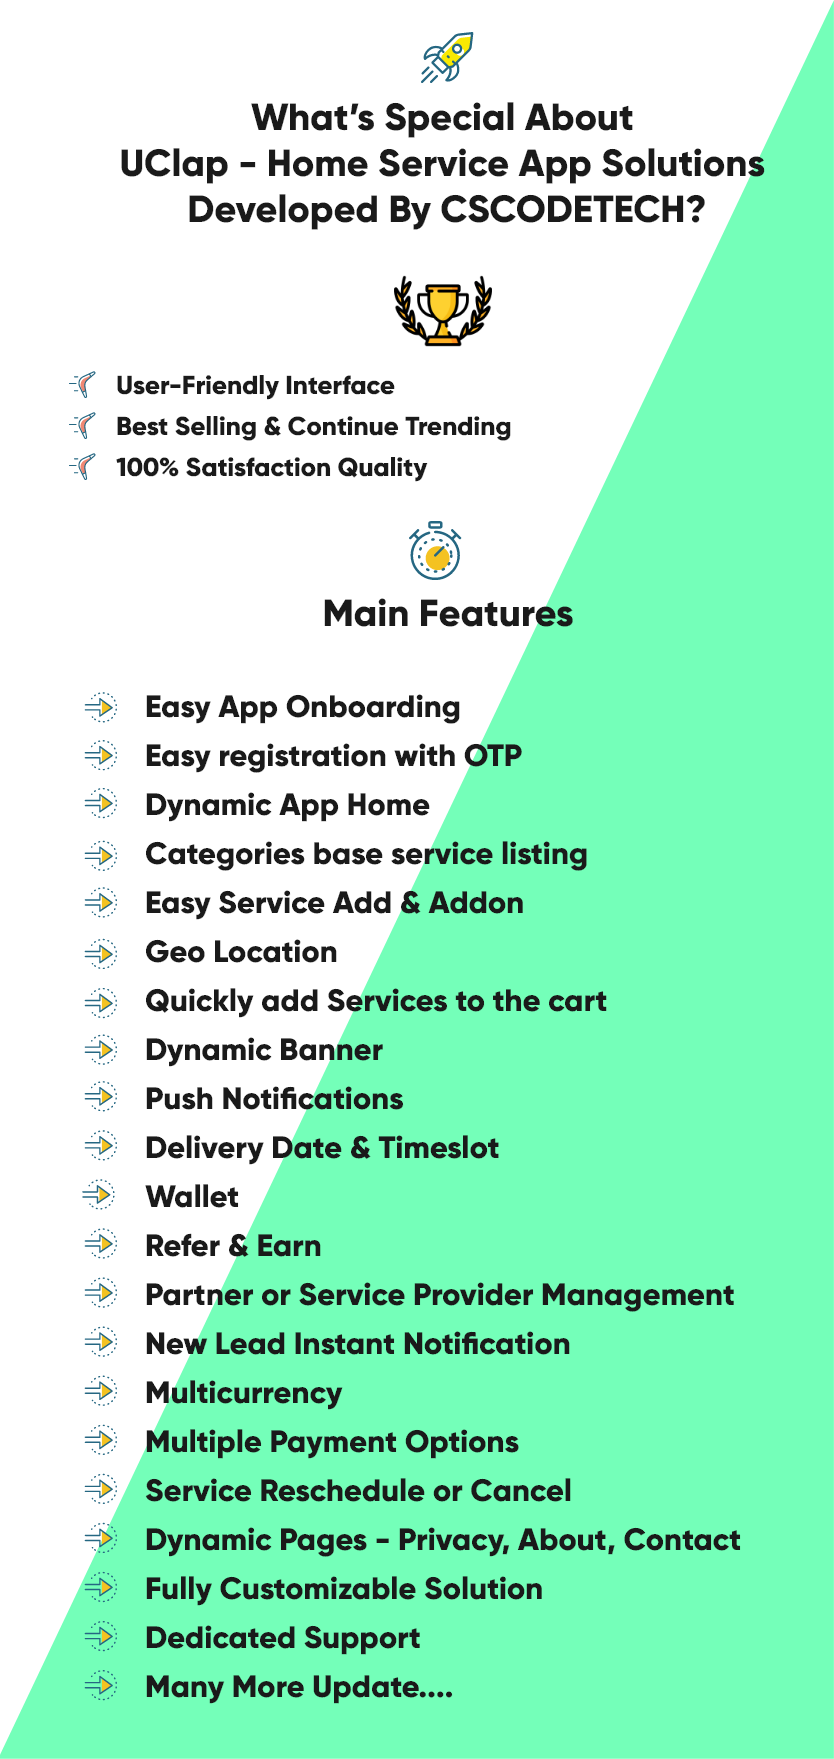 UClap - On Demand Home Service App   UrbanClap Clone   Android App with Interactive Admin Panel - 2